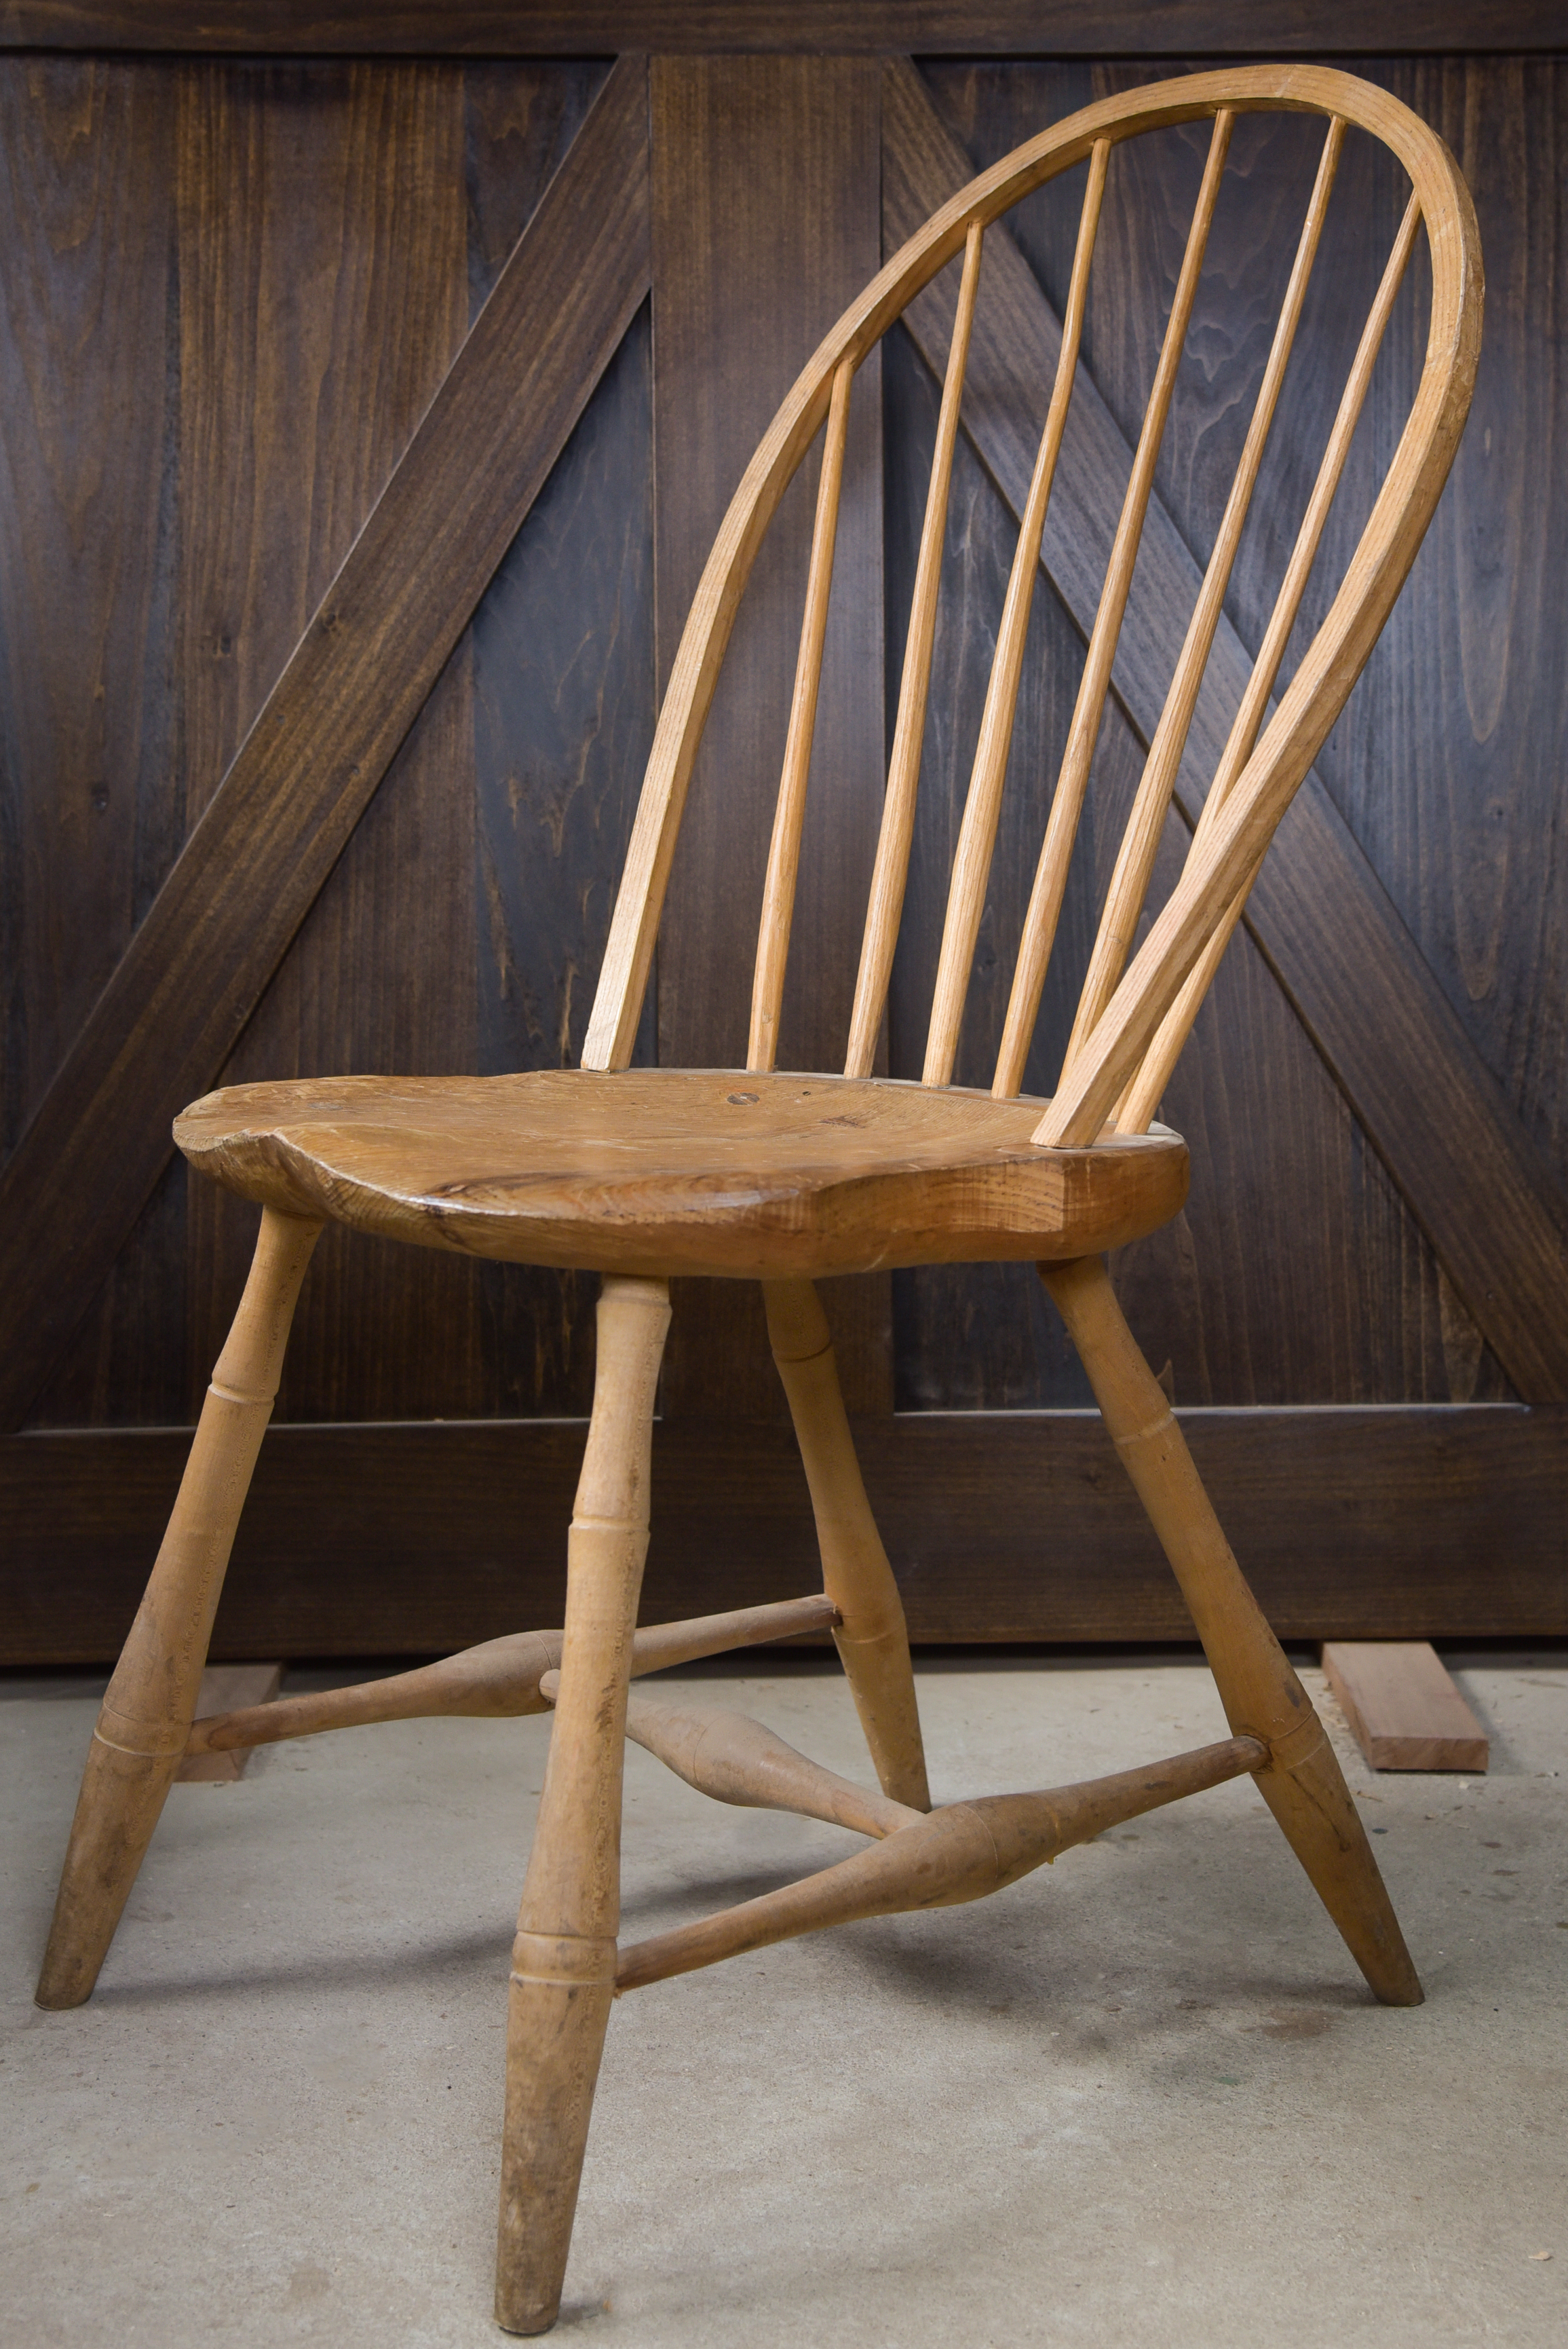 An unfinished student-made Windsor chair.